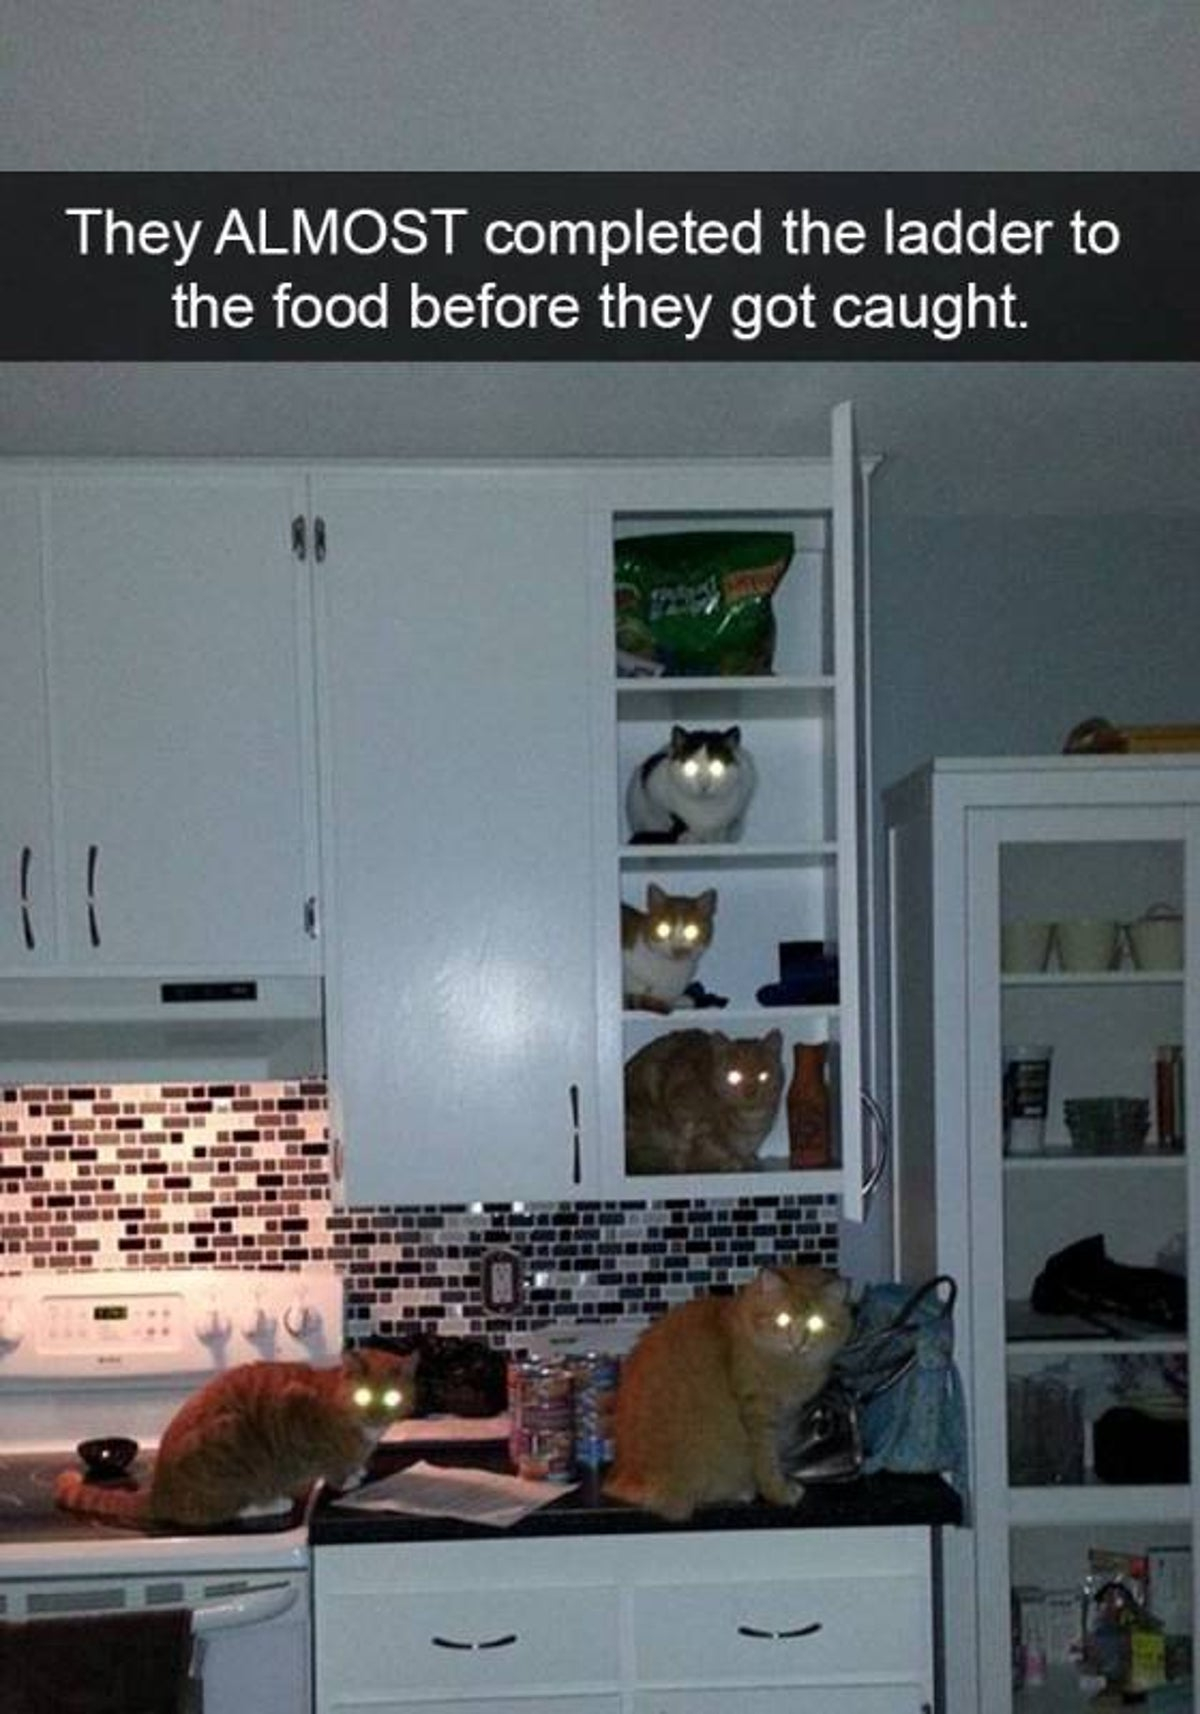 They ALMOST completed the ladder to the food before they got caught.